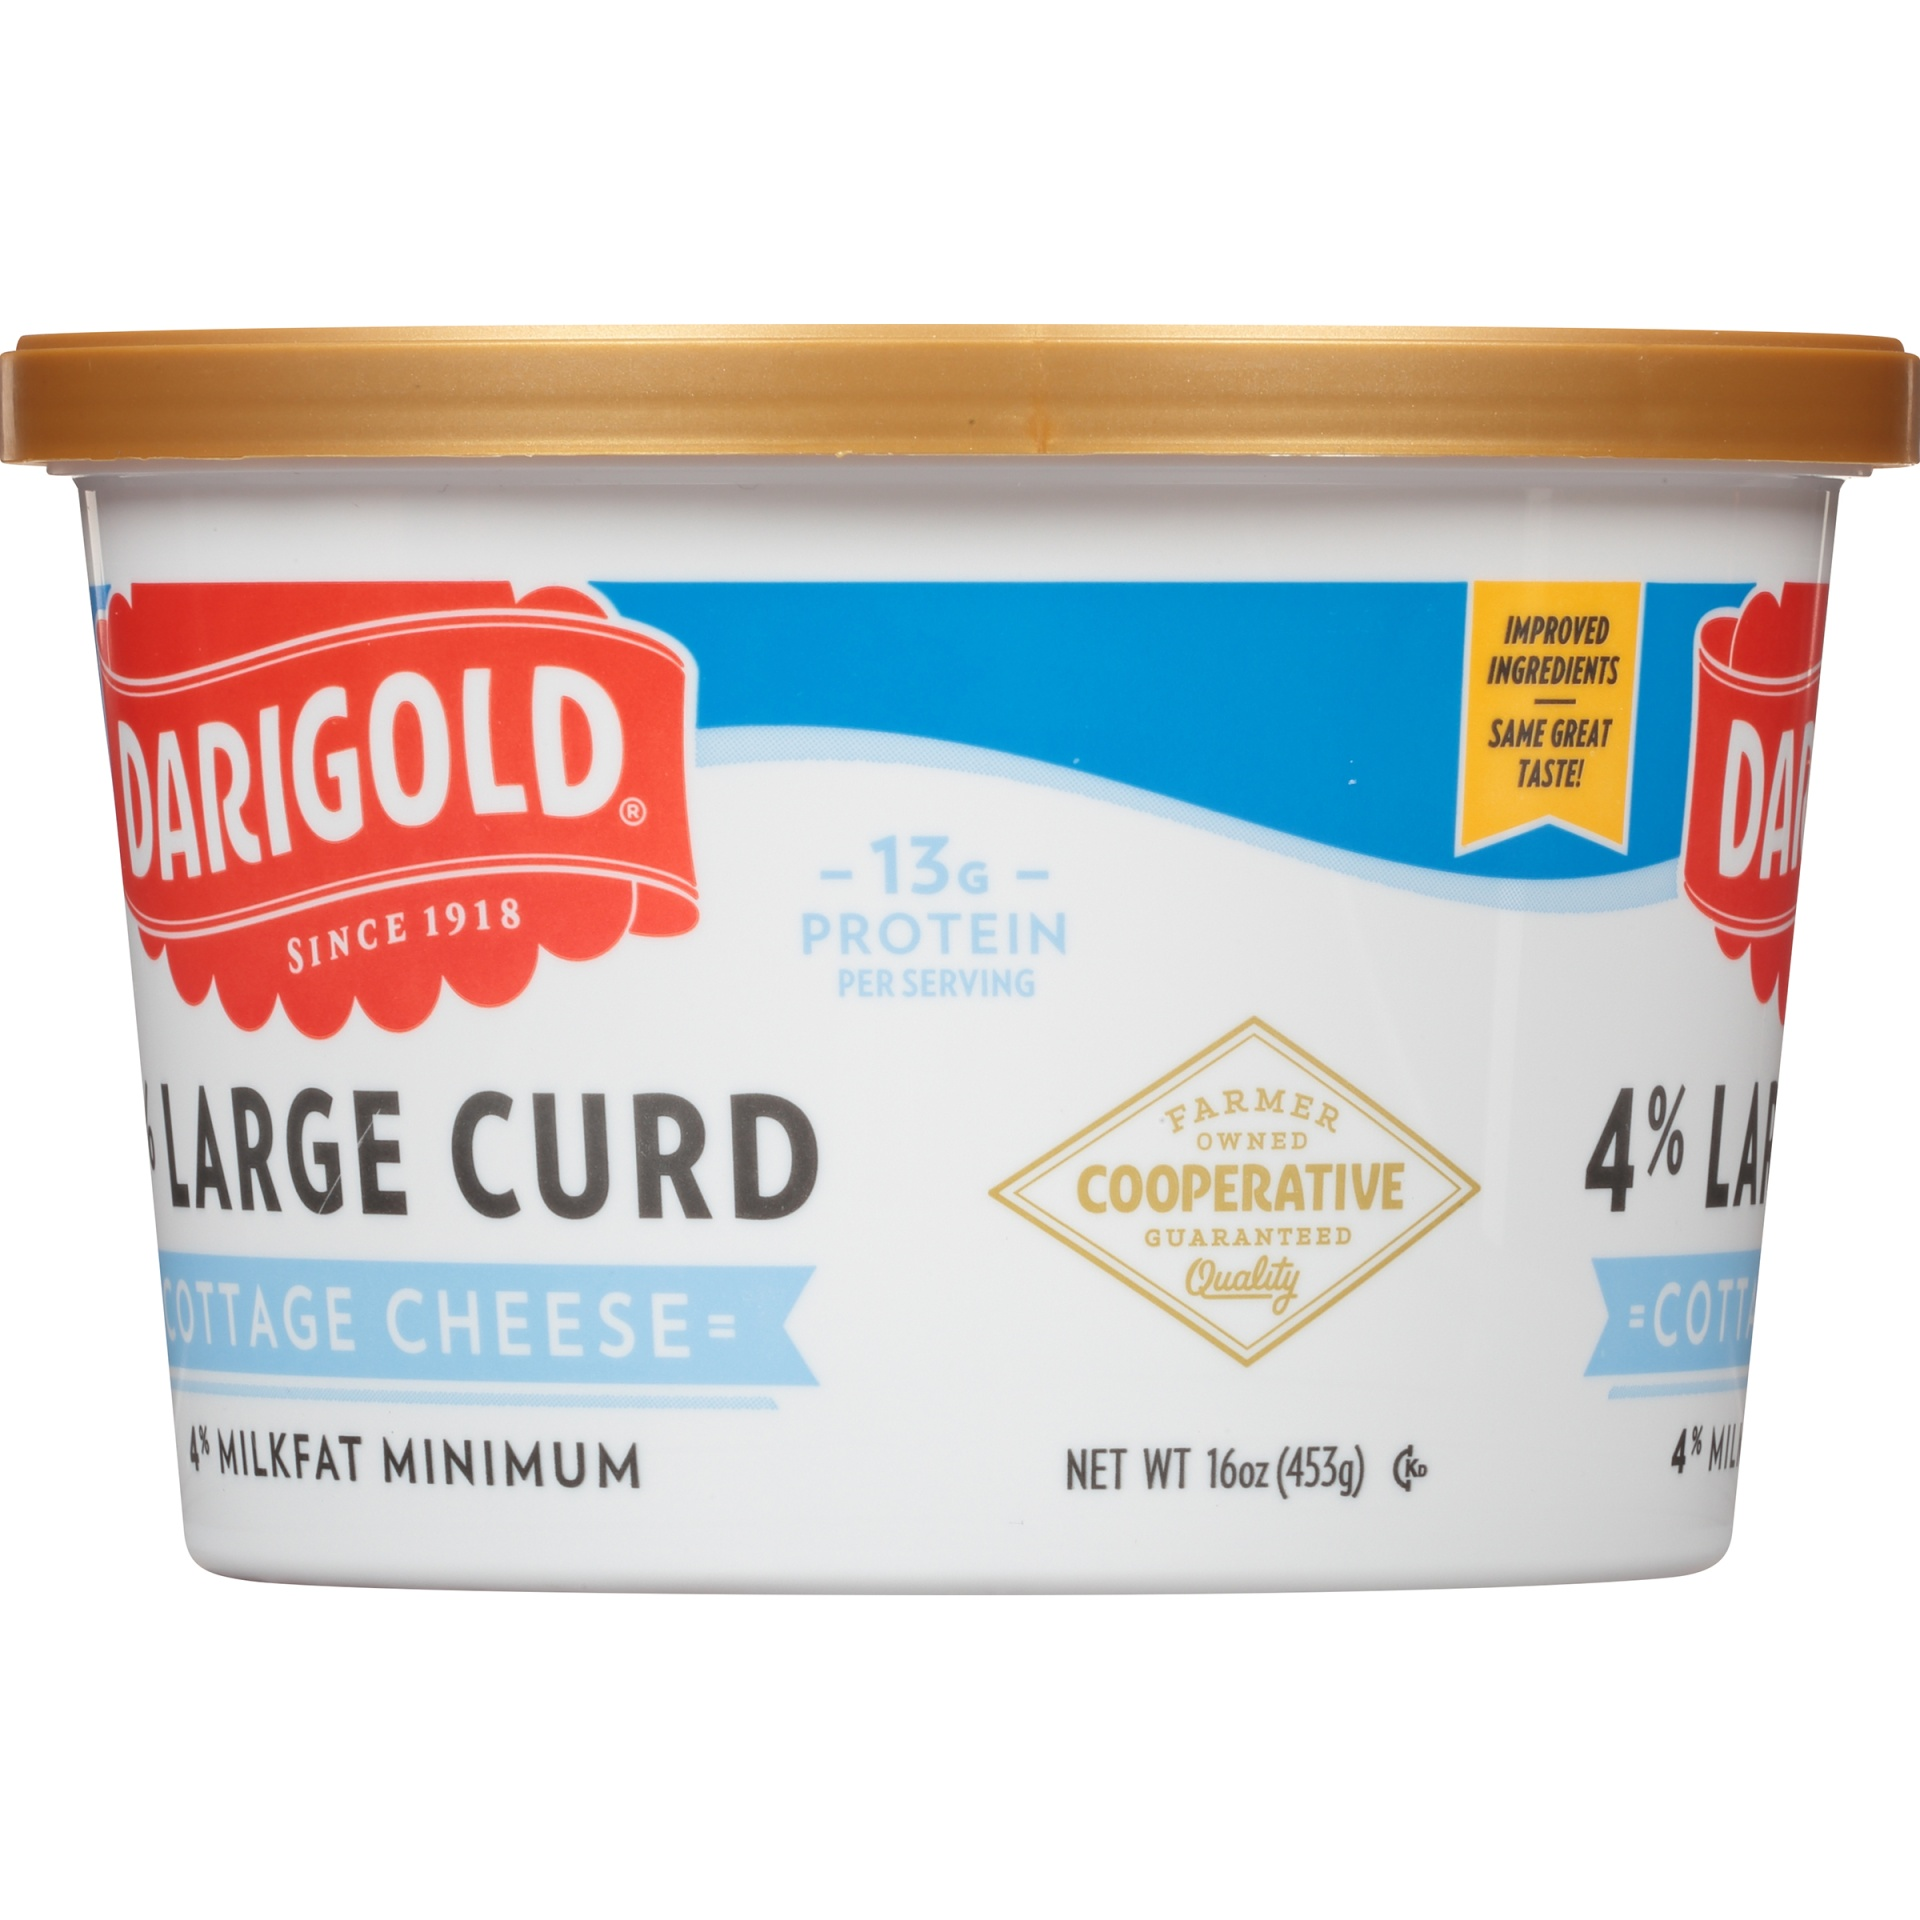 slide 2 of 6, Darigold 4% Large Curd Cottage Cheese,